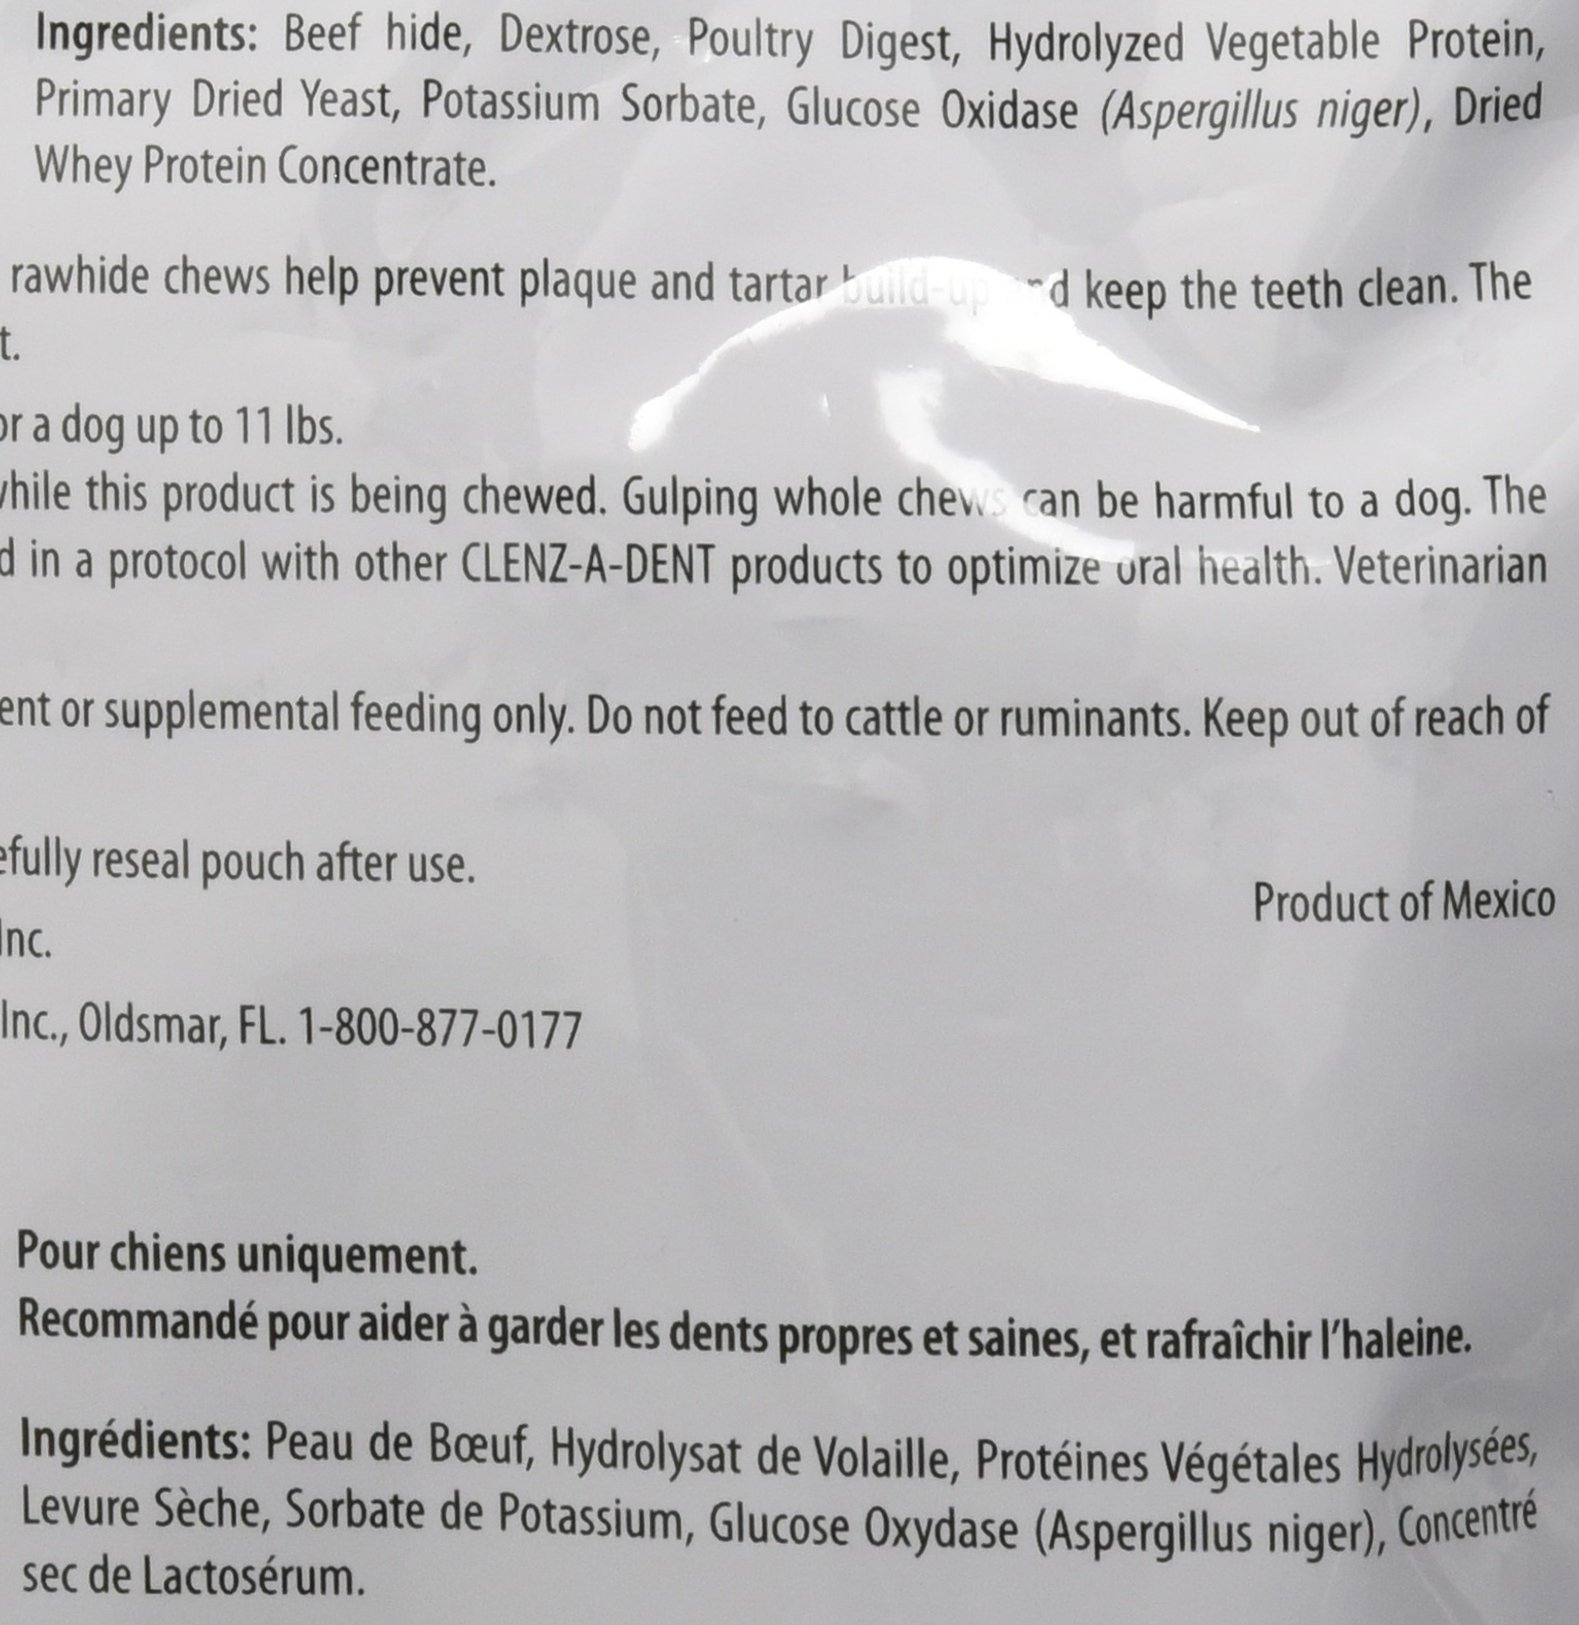 CEVA Animal Health CLE06130 Clenz-A-Dent 30 Count Rawhide Chews for Small Dogs by CEVA Animal Health (Image #2)